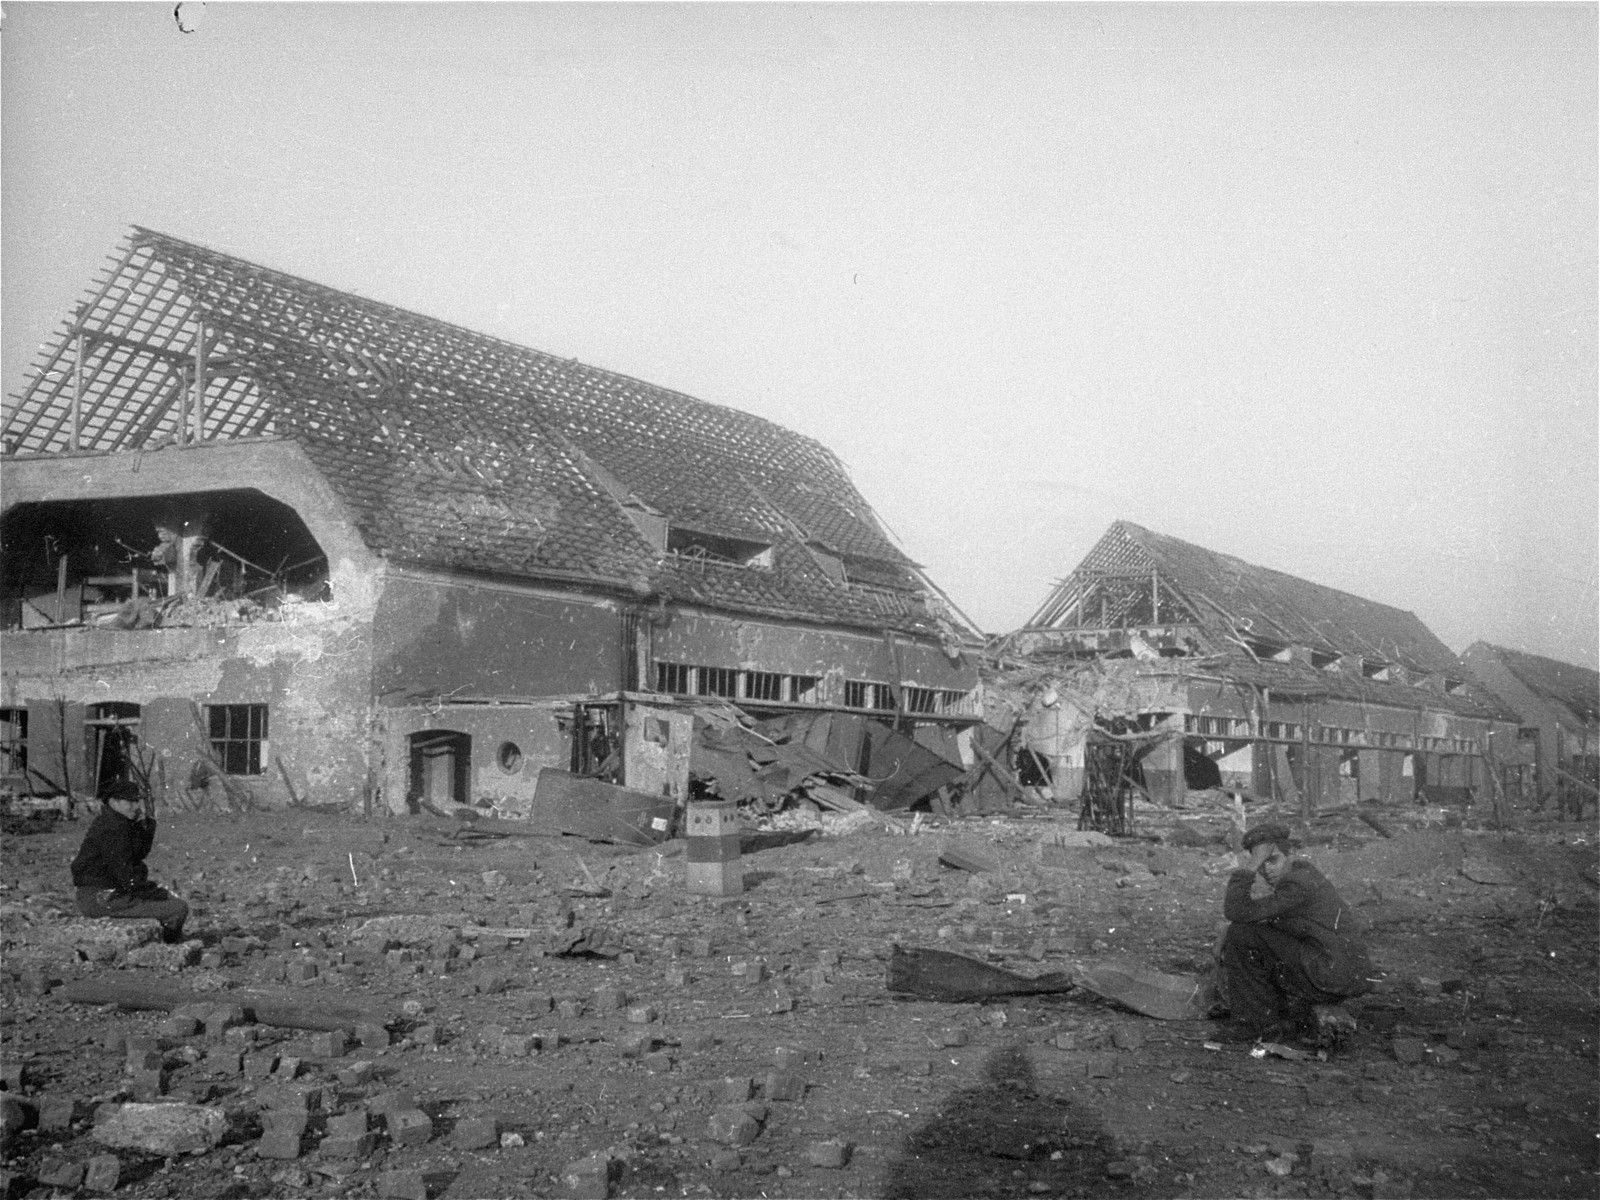 View of the ruins of the central barracks (Boelke Kaserne) in the Nordhausen concentration camp.  A survivor sits in the foreground.